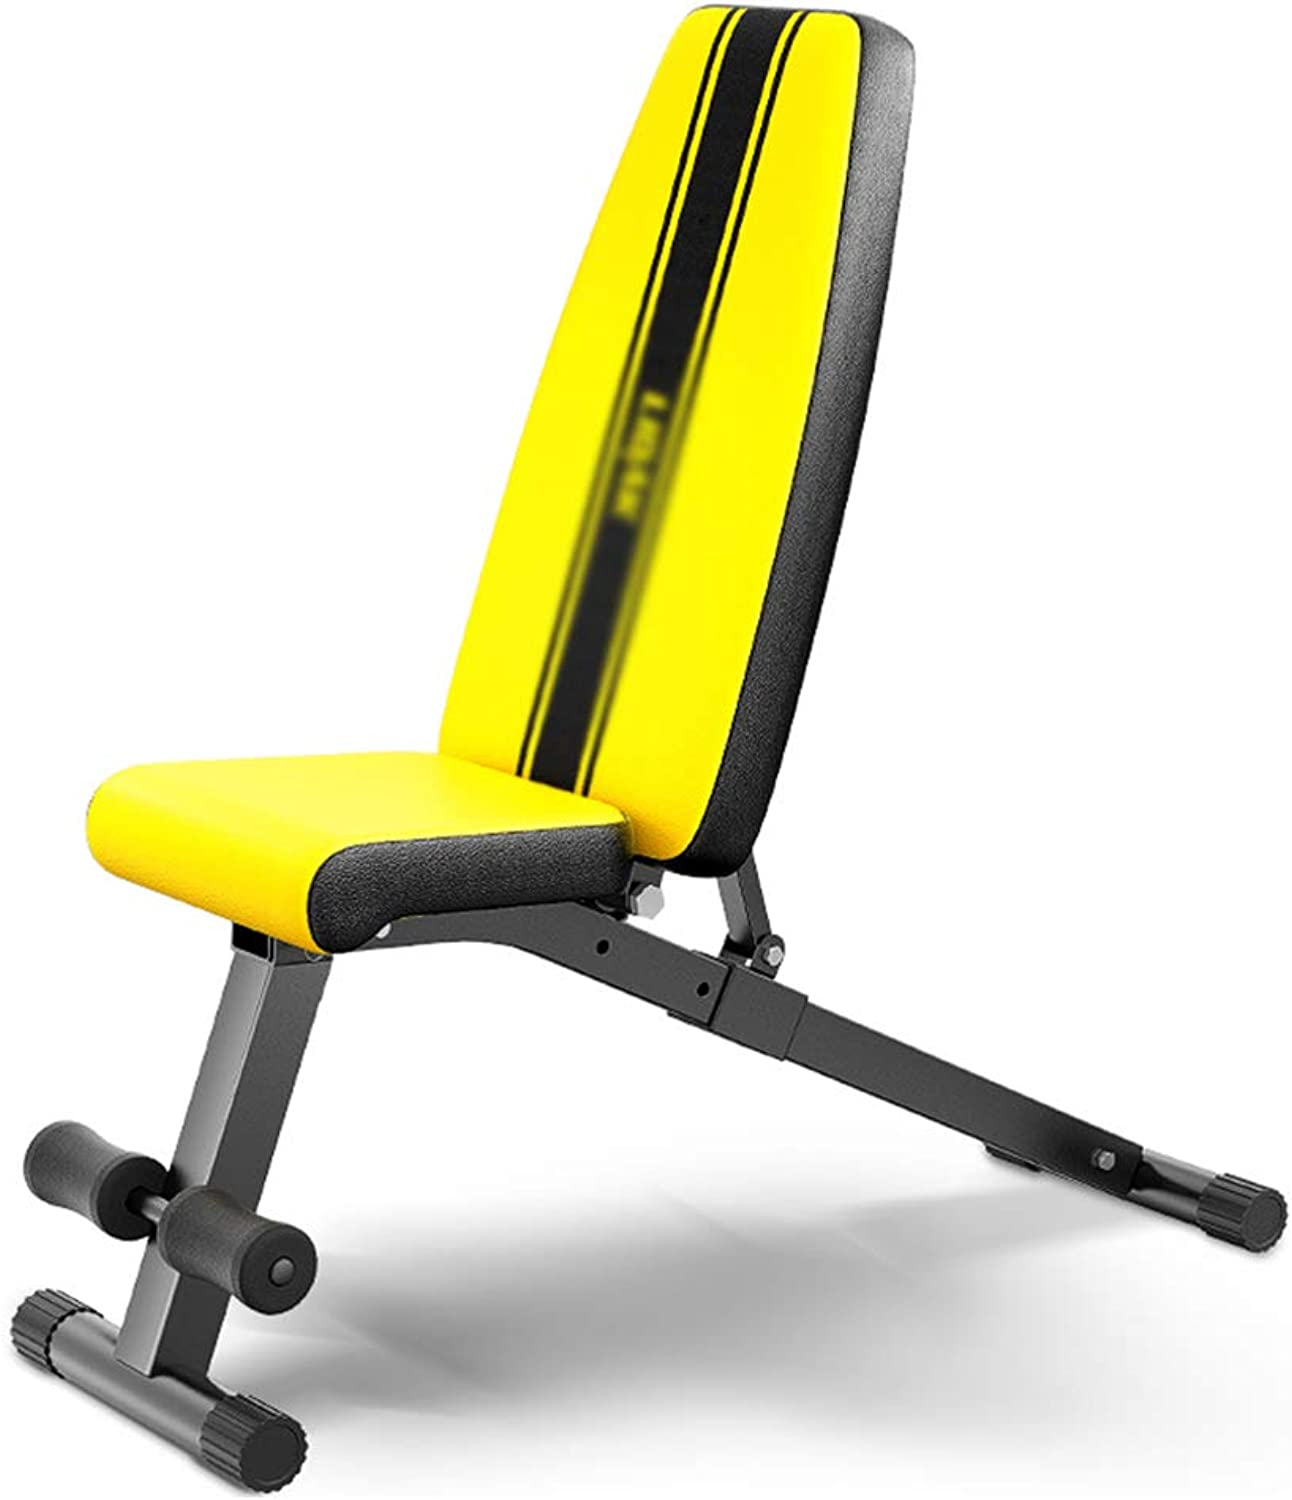 Gym Weight Bench Situps Fitness Equipment Home Abdominal Trainer Exercise Training Bench (color   Yellow, Size   33.5x106x45cm)